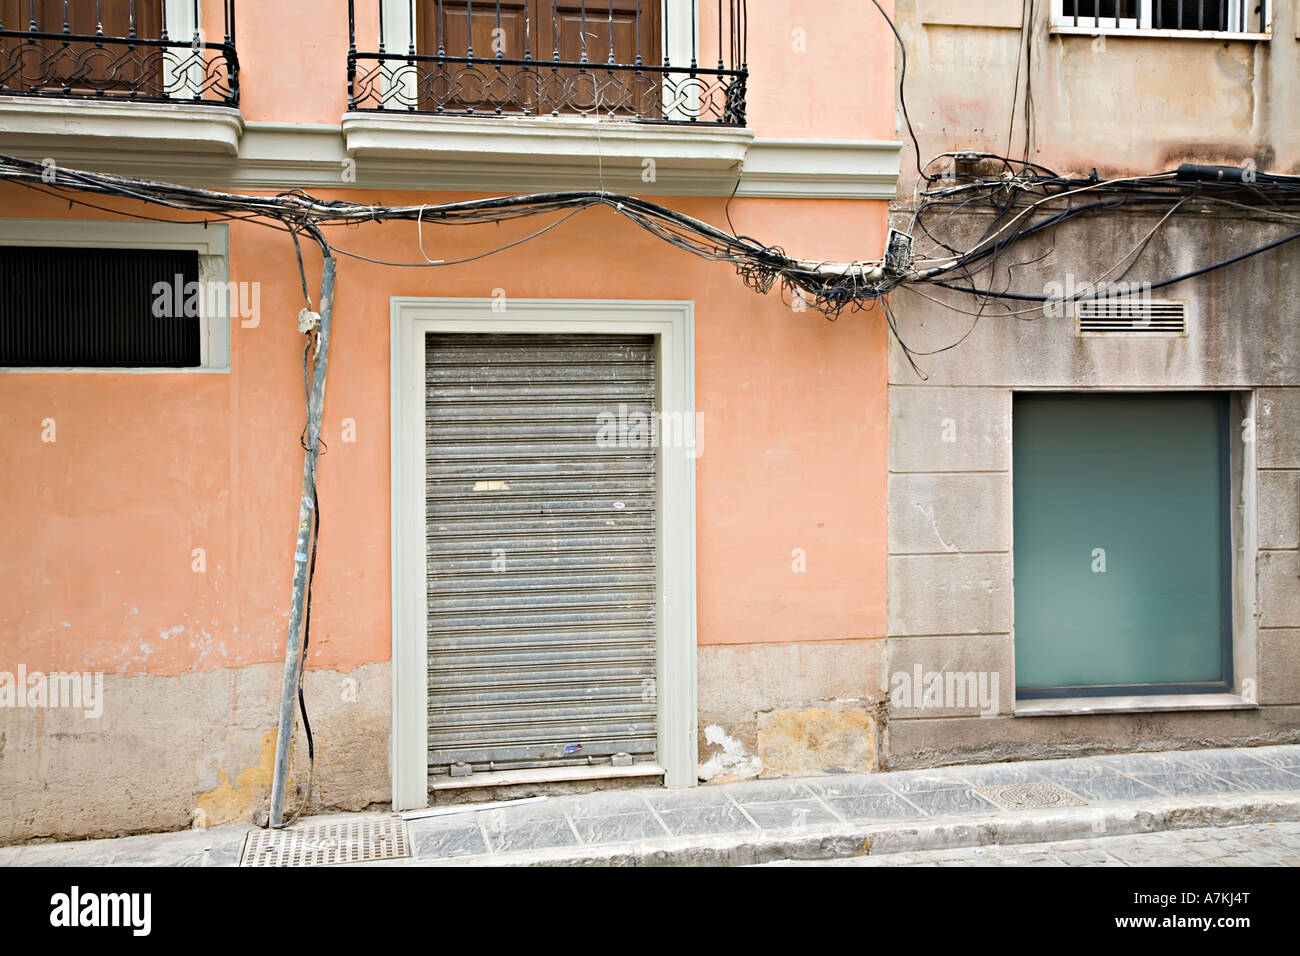 hight resolution of dangerous exposed electrical wiring on outside of house granada spain